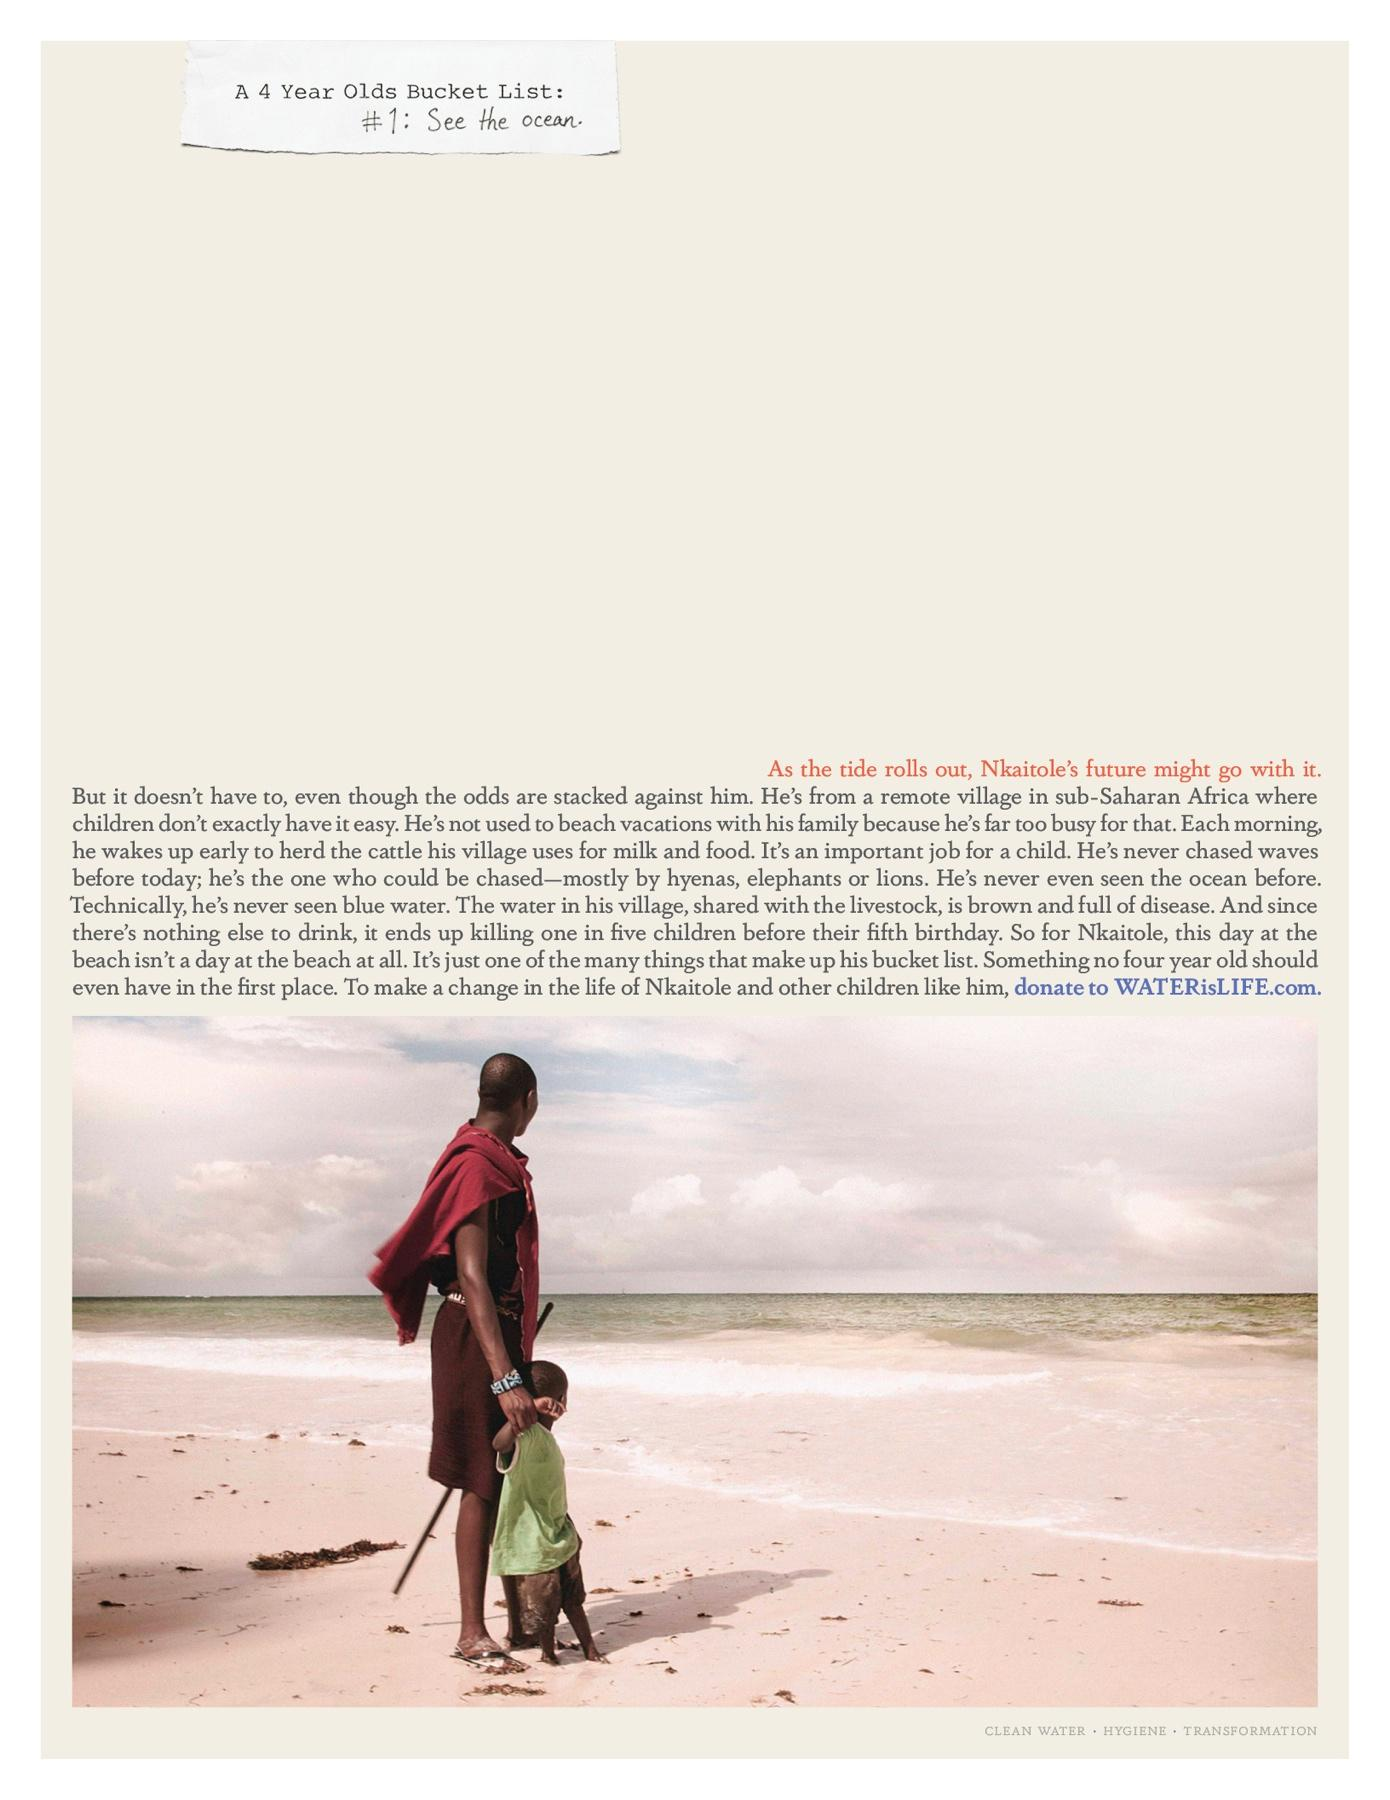 WATERisLIFE Print Ad -  A 4 year old's bucket list  #1  See the ocean